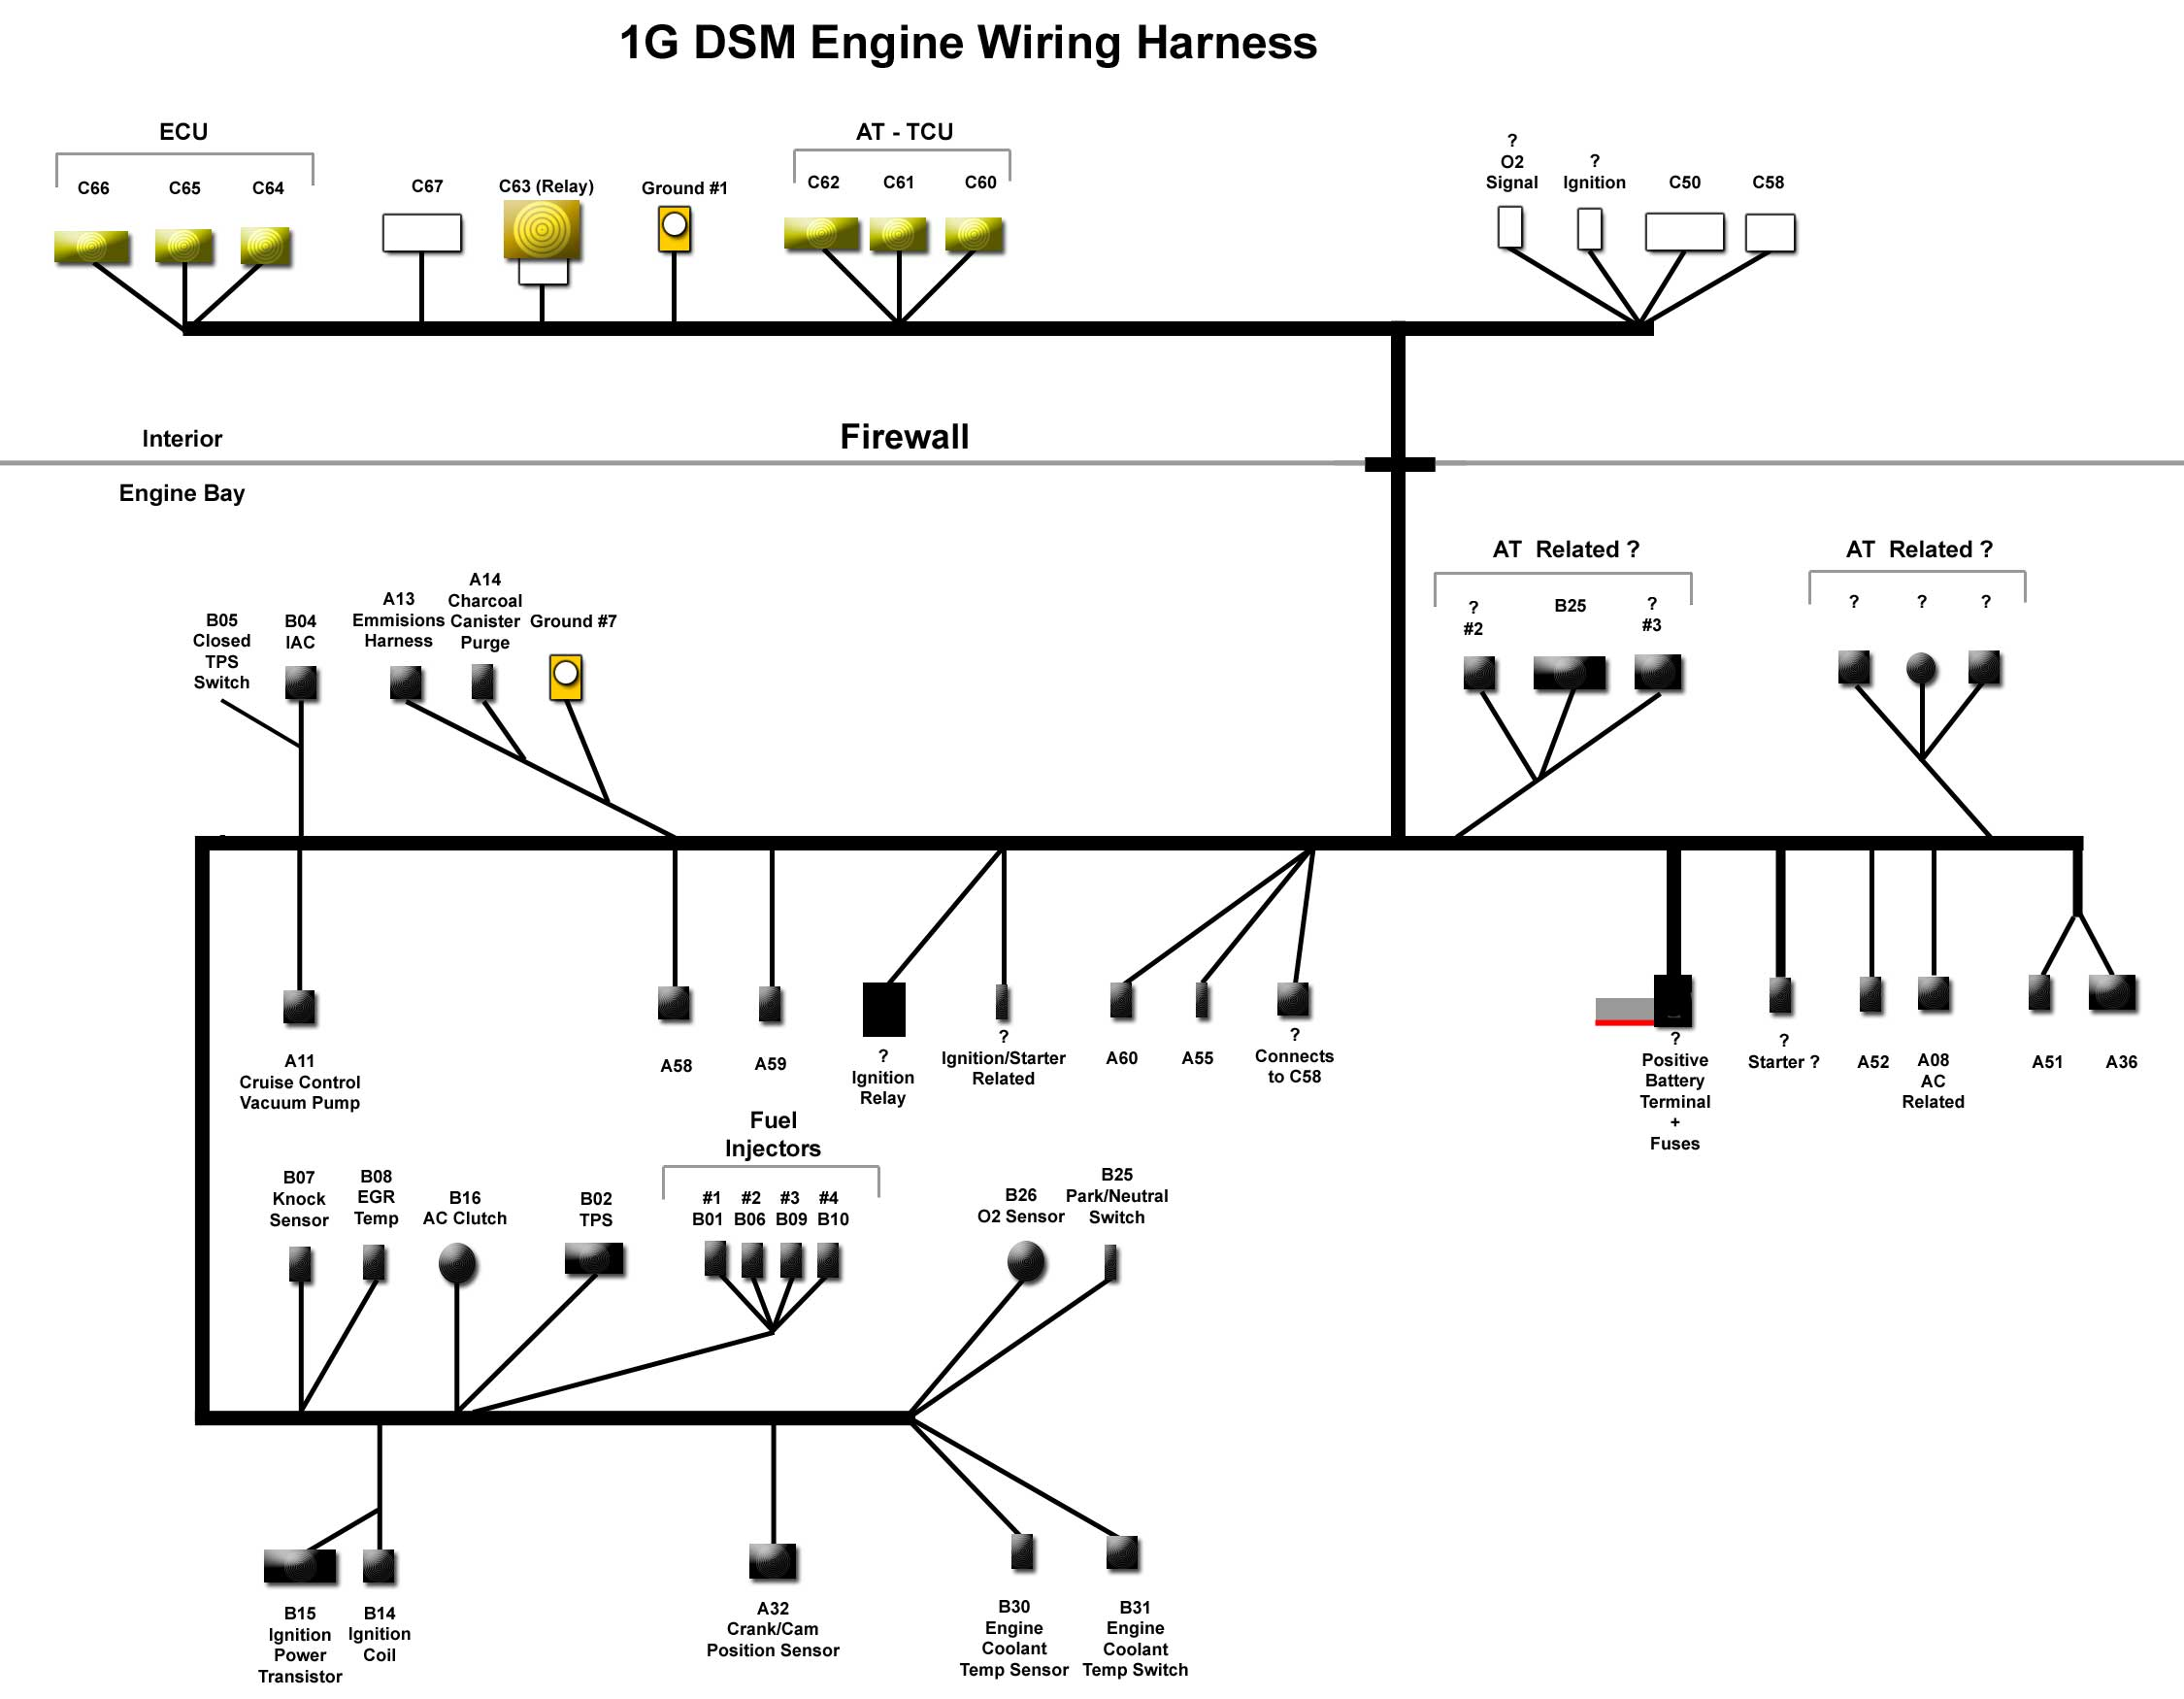 1G DSM EngineHarness wiring harness diagram jeep liberty wiring harness diagram scosche wiring harness color code at mifinder.co